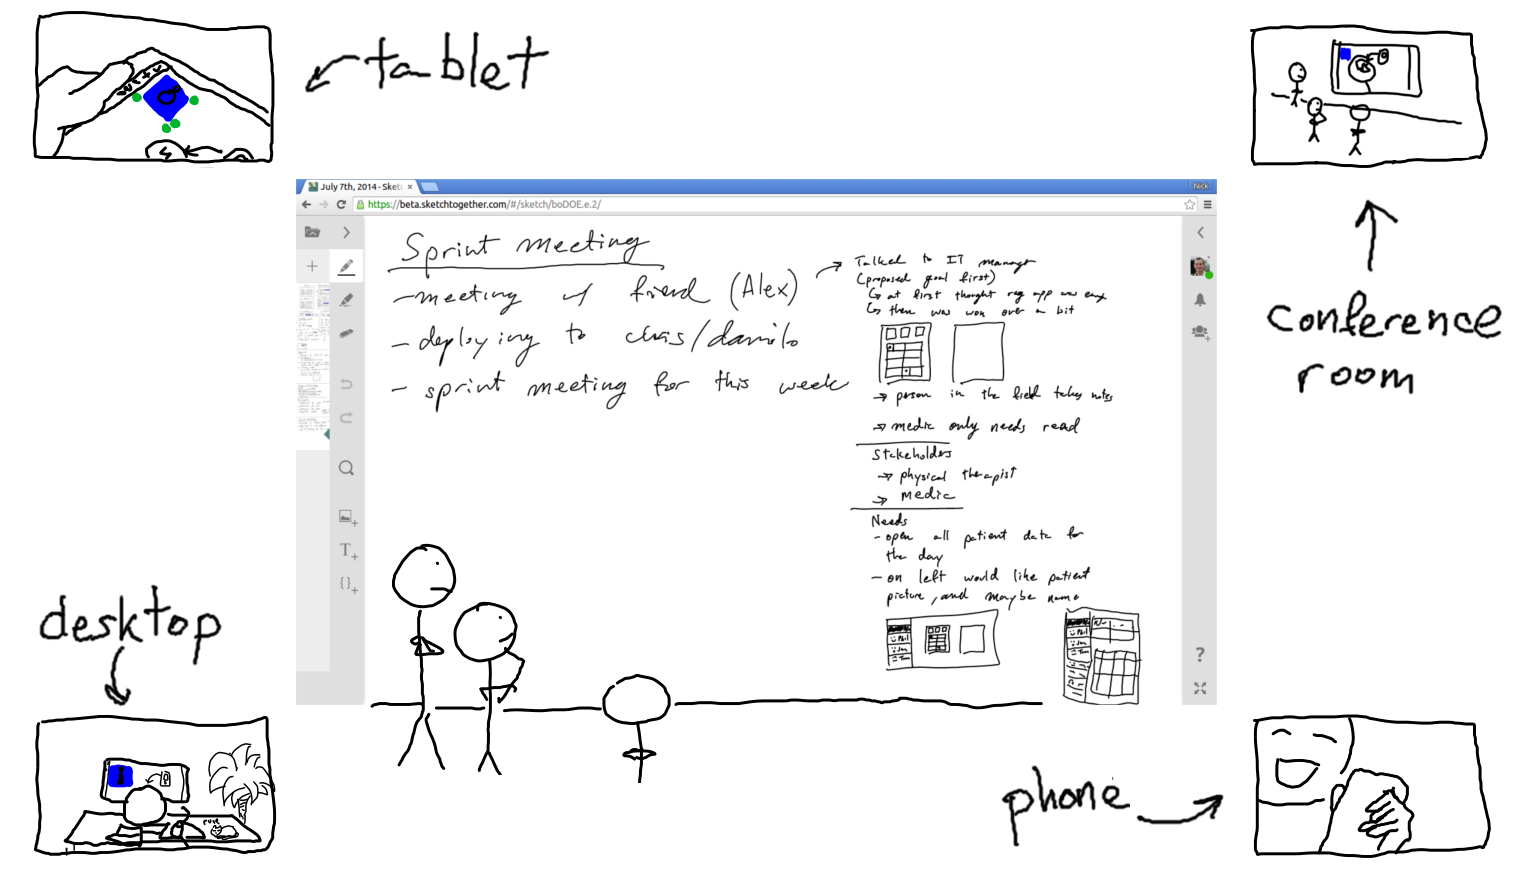 A sketch of a SketchTogether used in a conference room and remotely on mobile